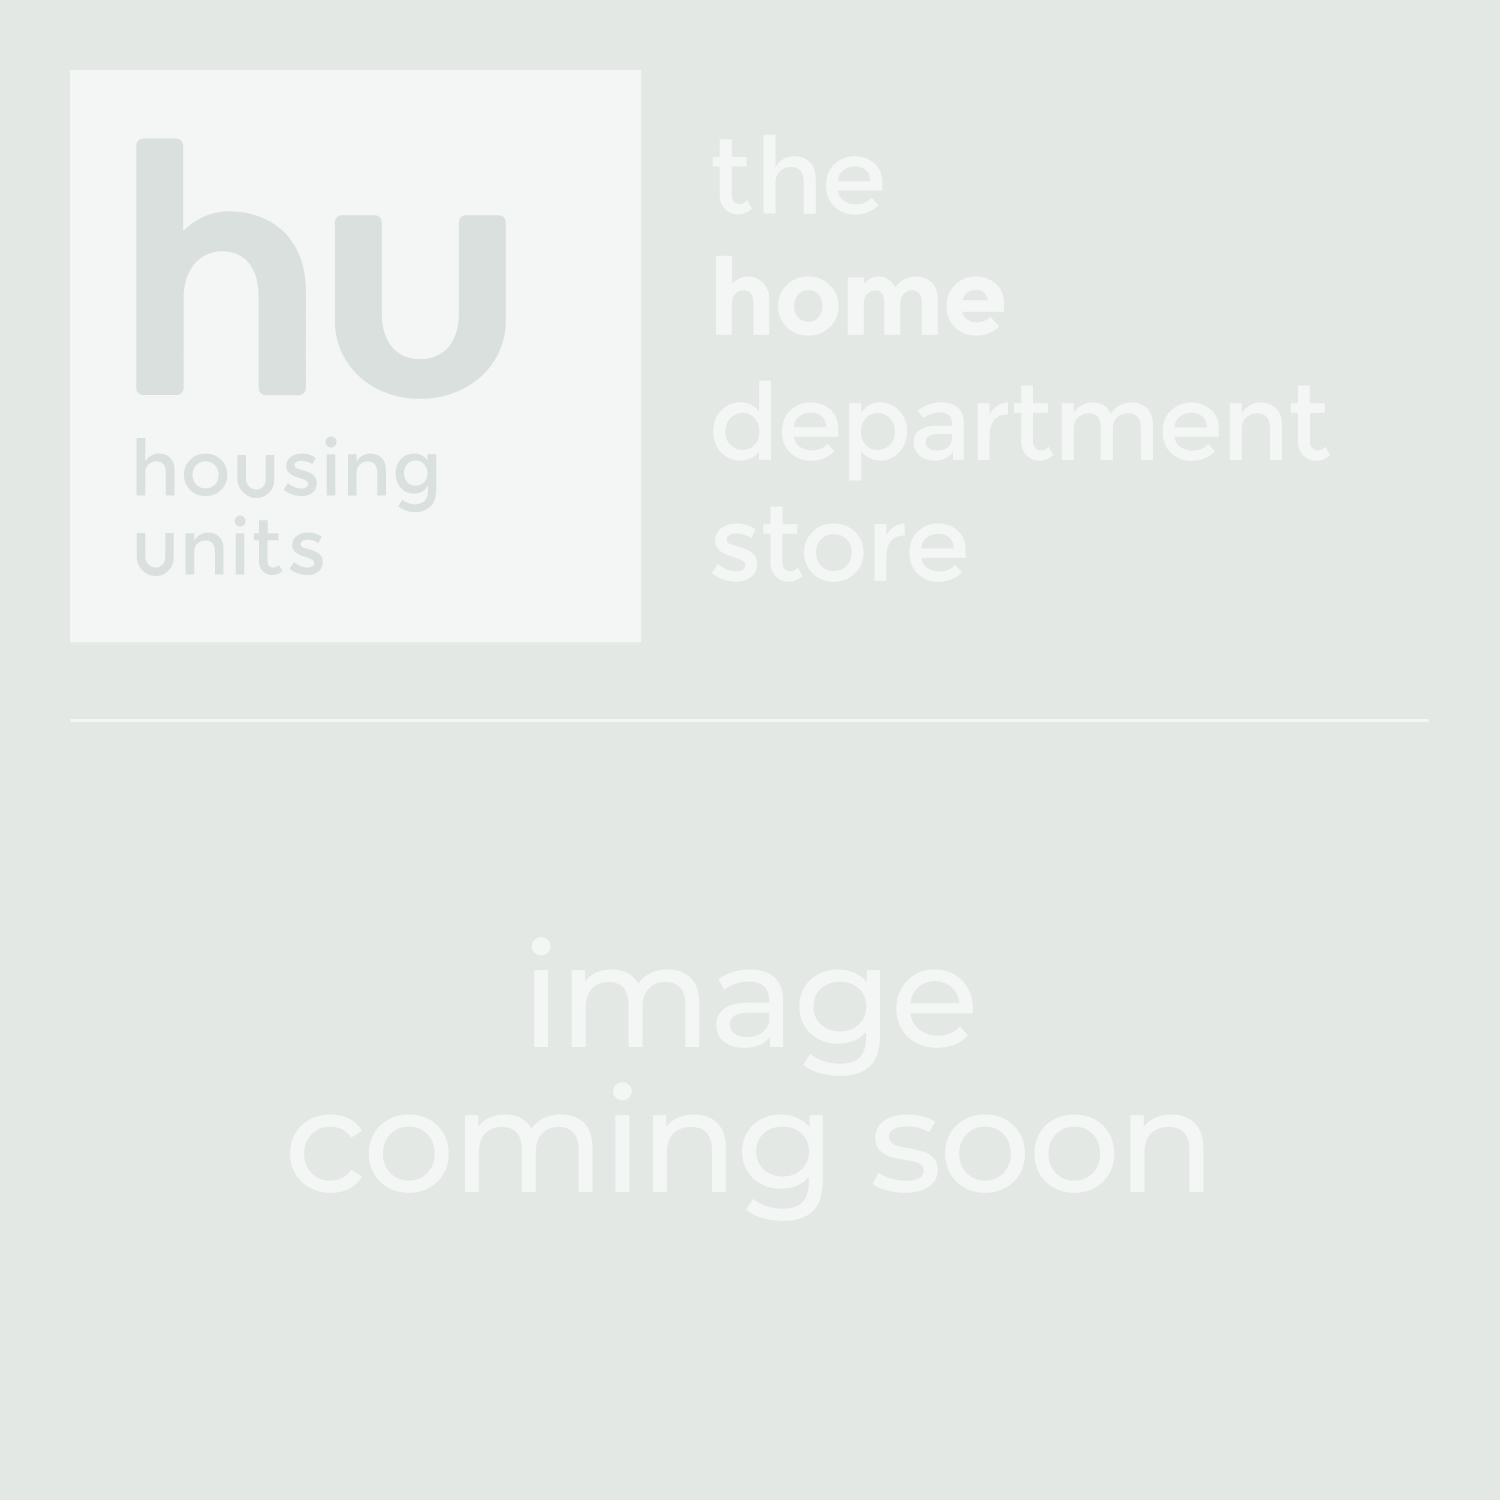 Celine Crystal & Chrome Table Lamp | Housing Units